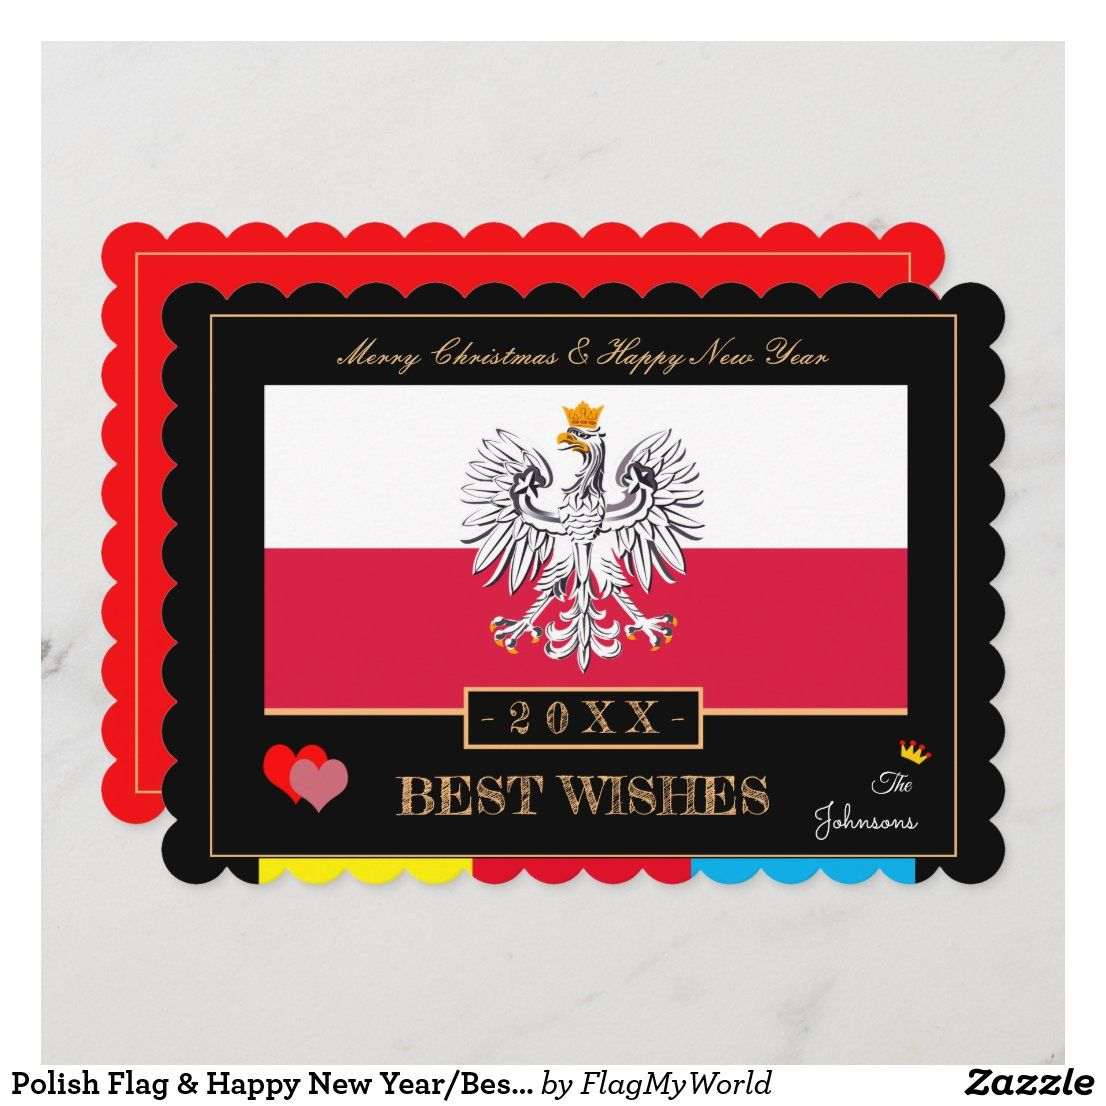 Polish Flag Happy New Year Best Wishes Poland Holiday Card Zazzle Com Holiday Design Card Family Christmas Cards Holiday Cards